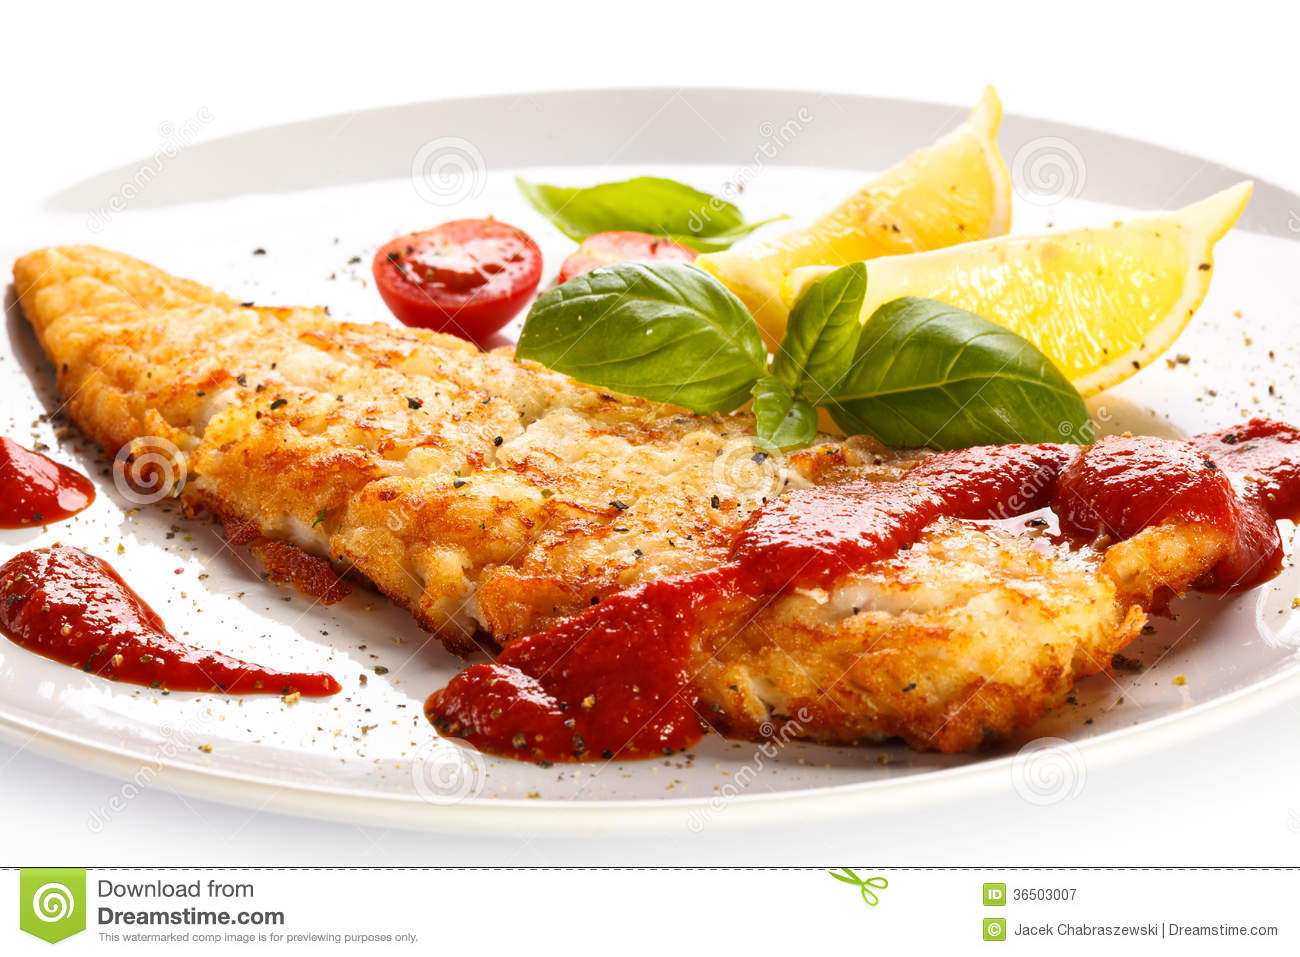 Fried fish fillet royalty free stock photography image for Fried fish nutrition